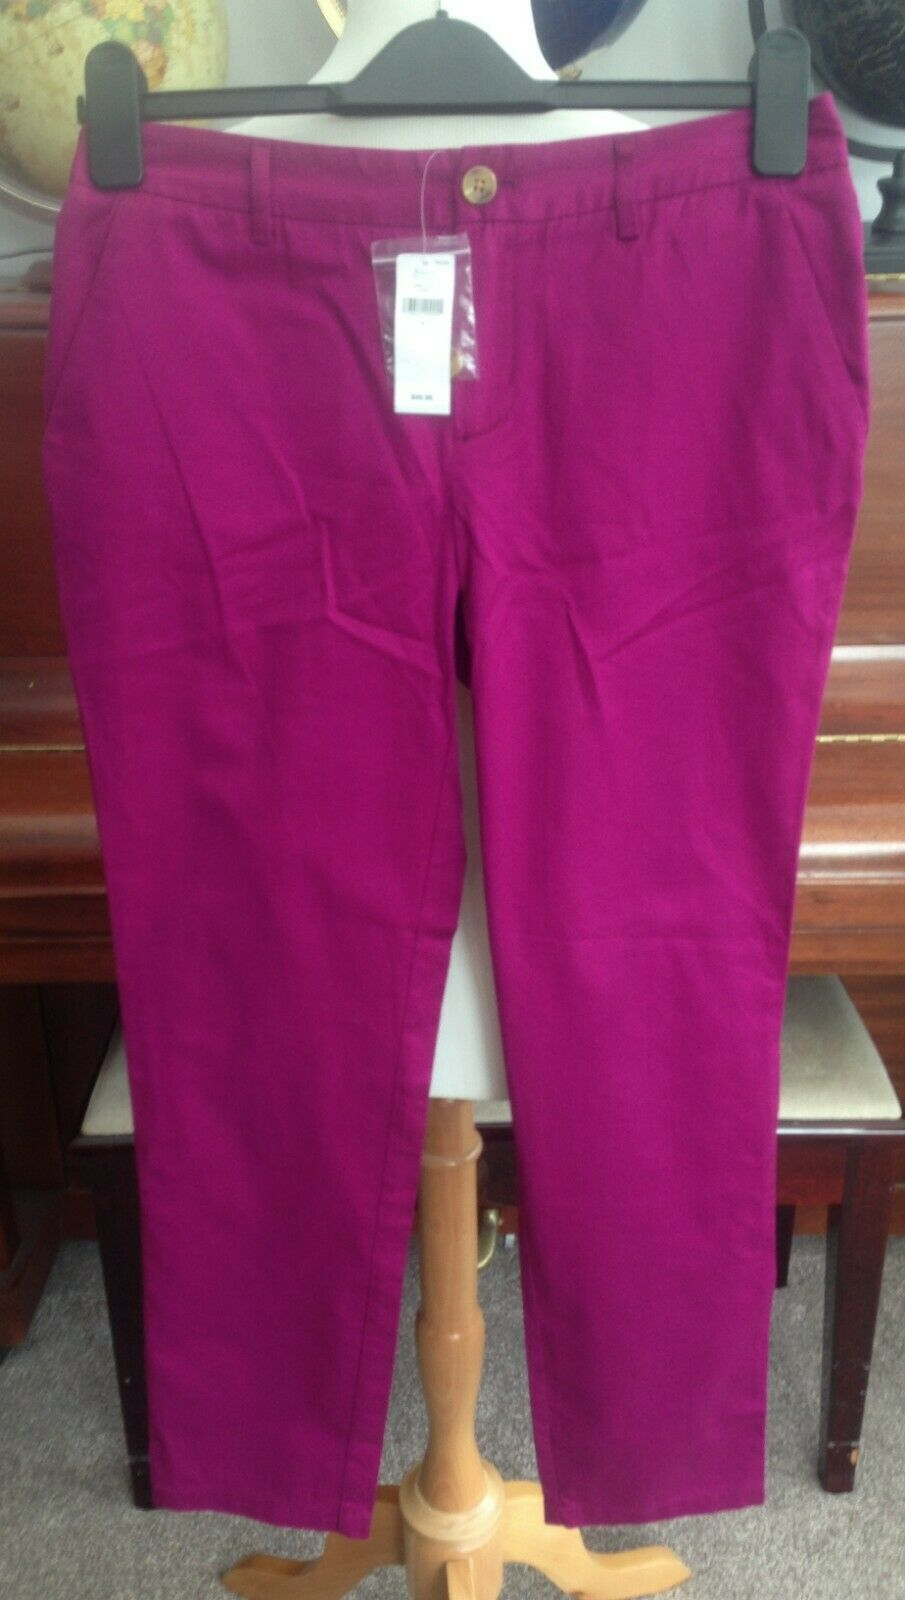 New With Tags - Gap Pink Trousers - US Size 0 ( )